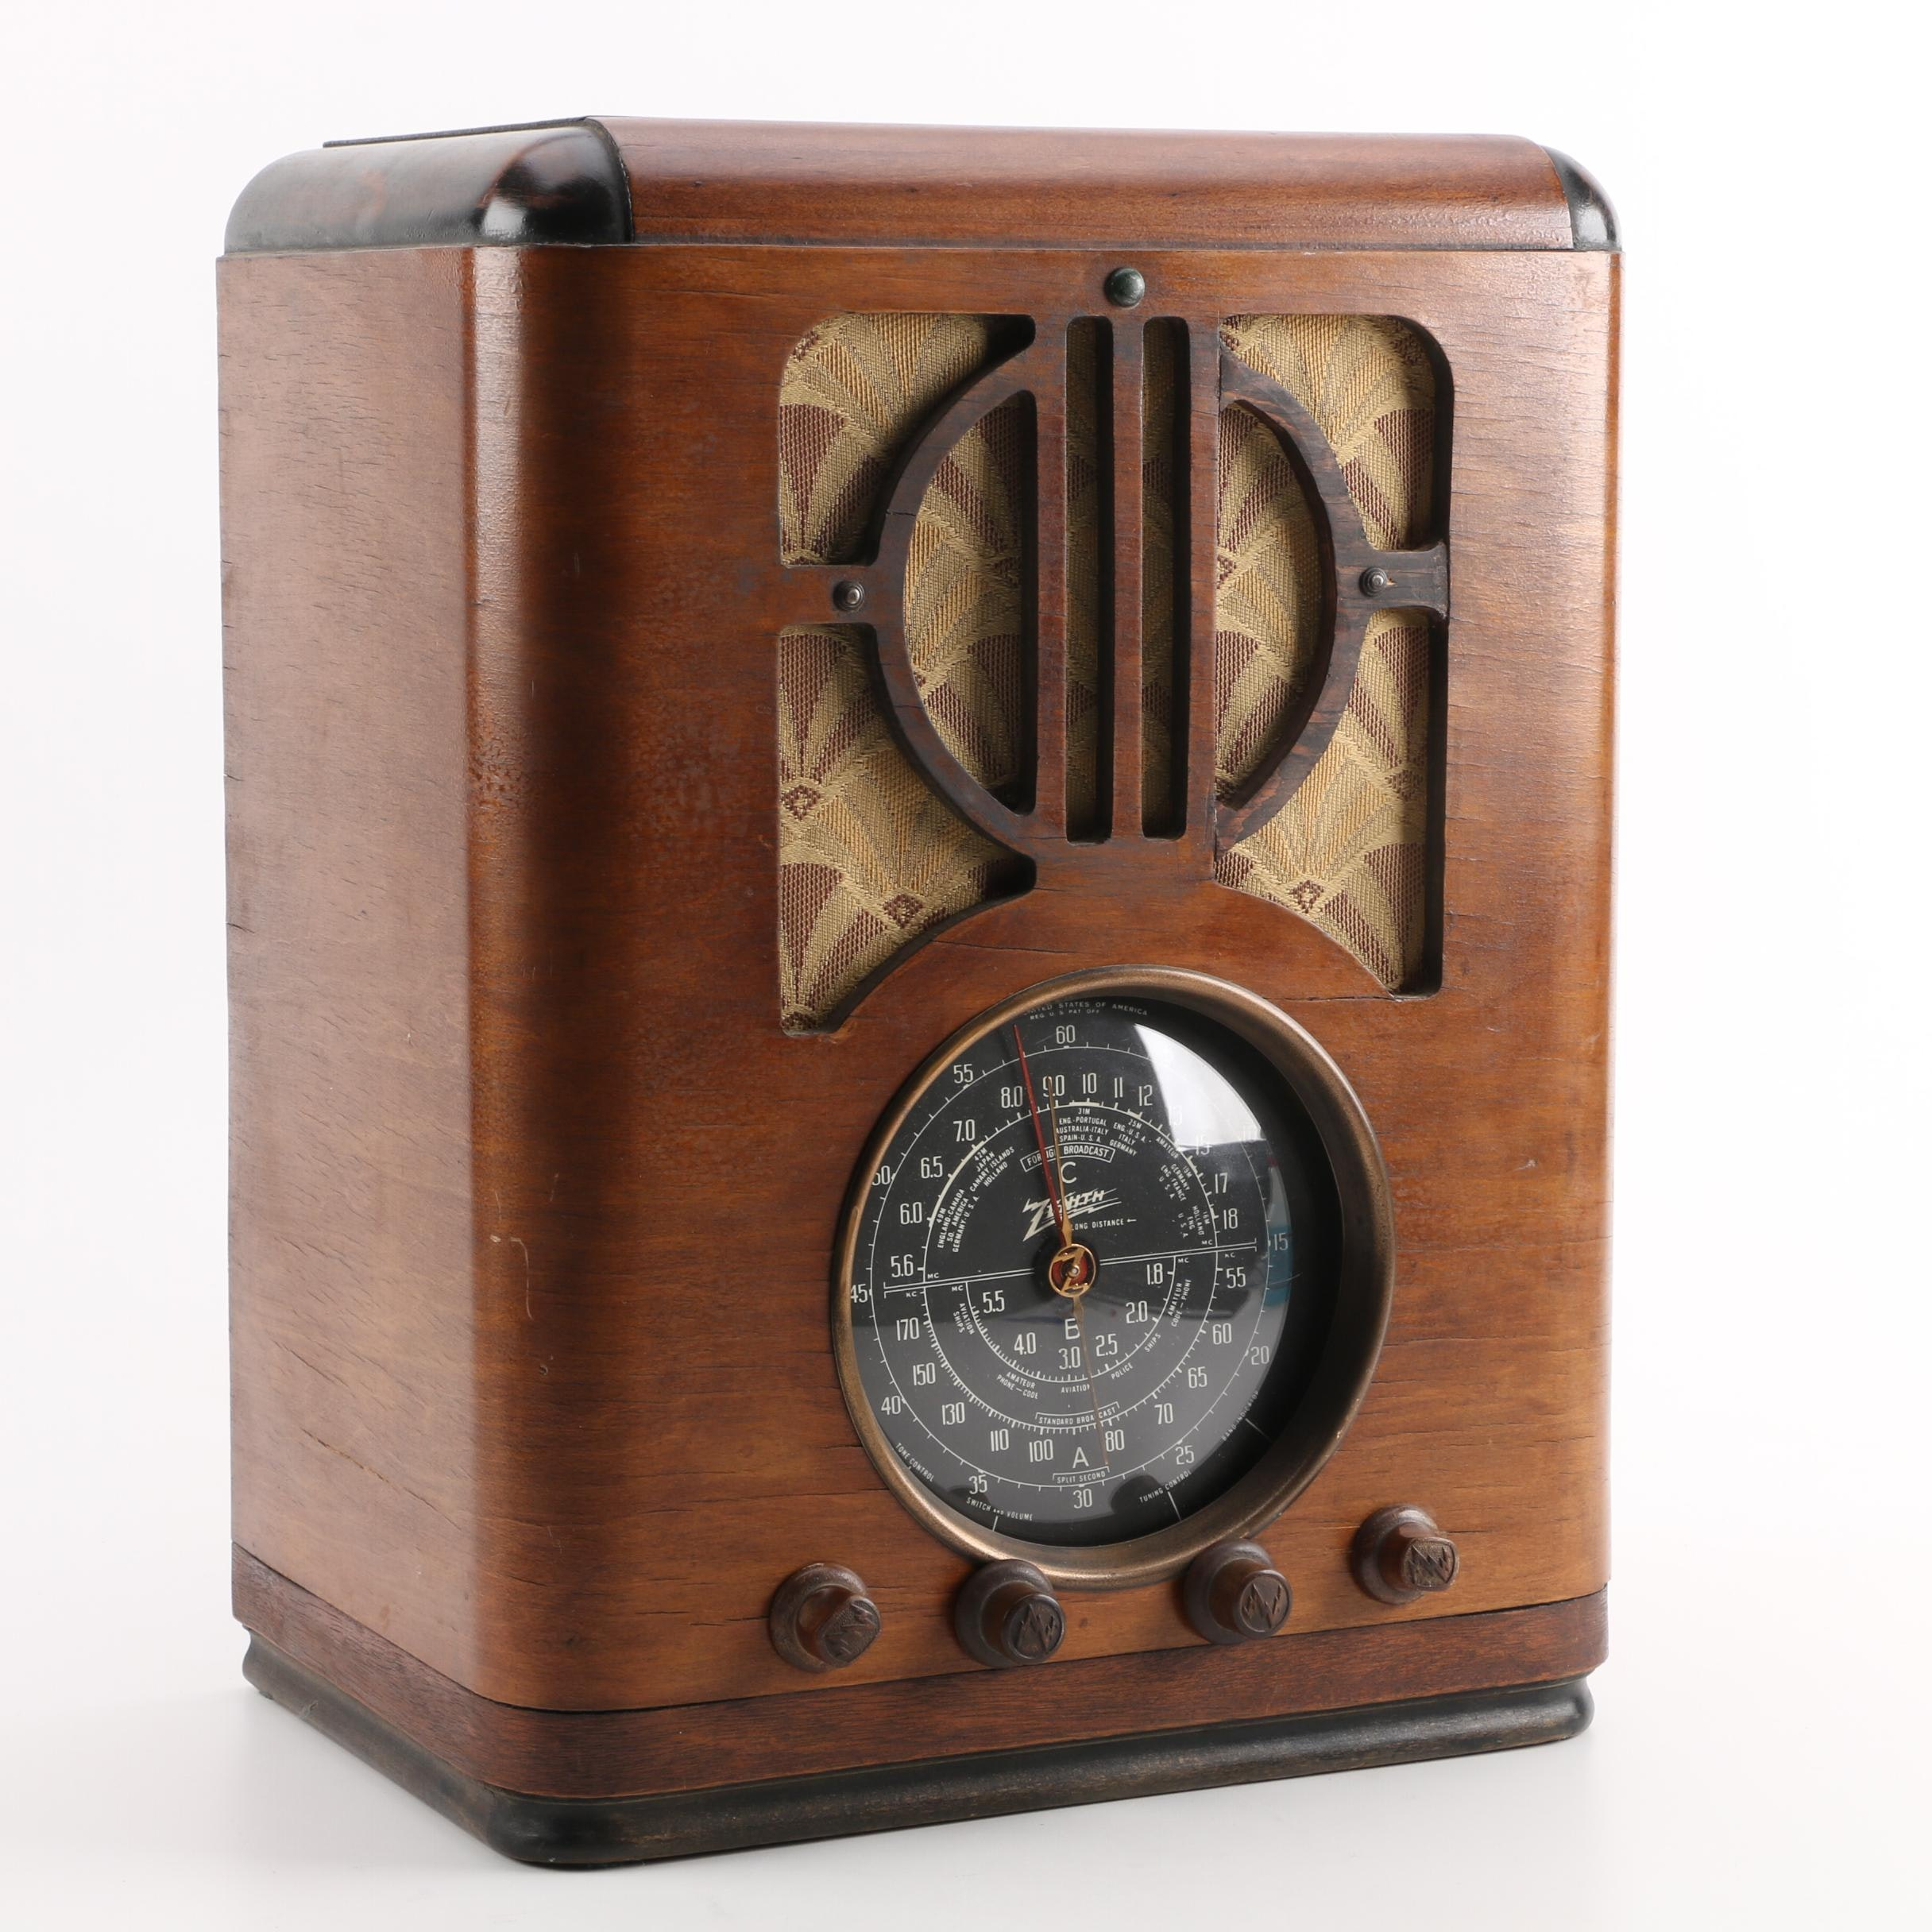 1937 Zenith 6S229 Tabletop Radio with Broadcast, Short Wave, and Police Bands